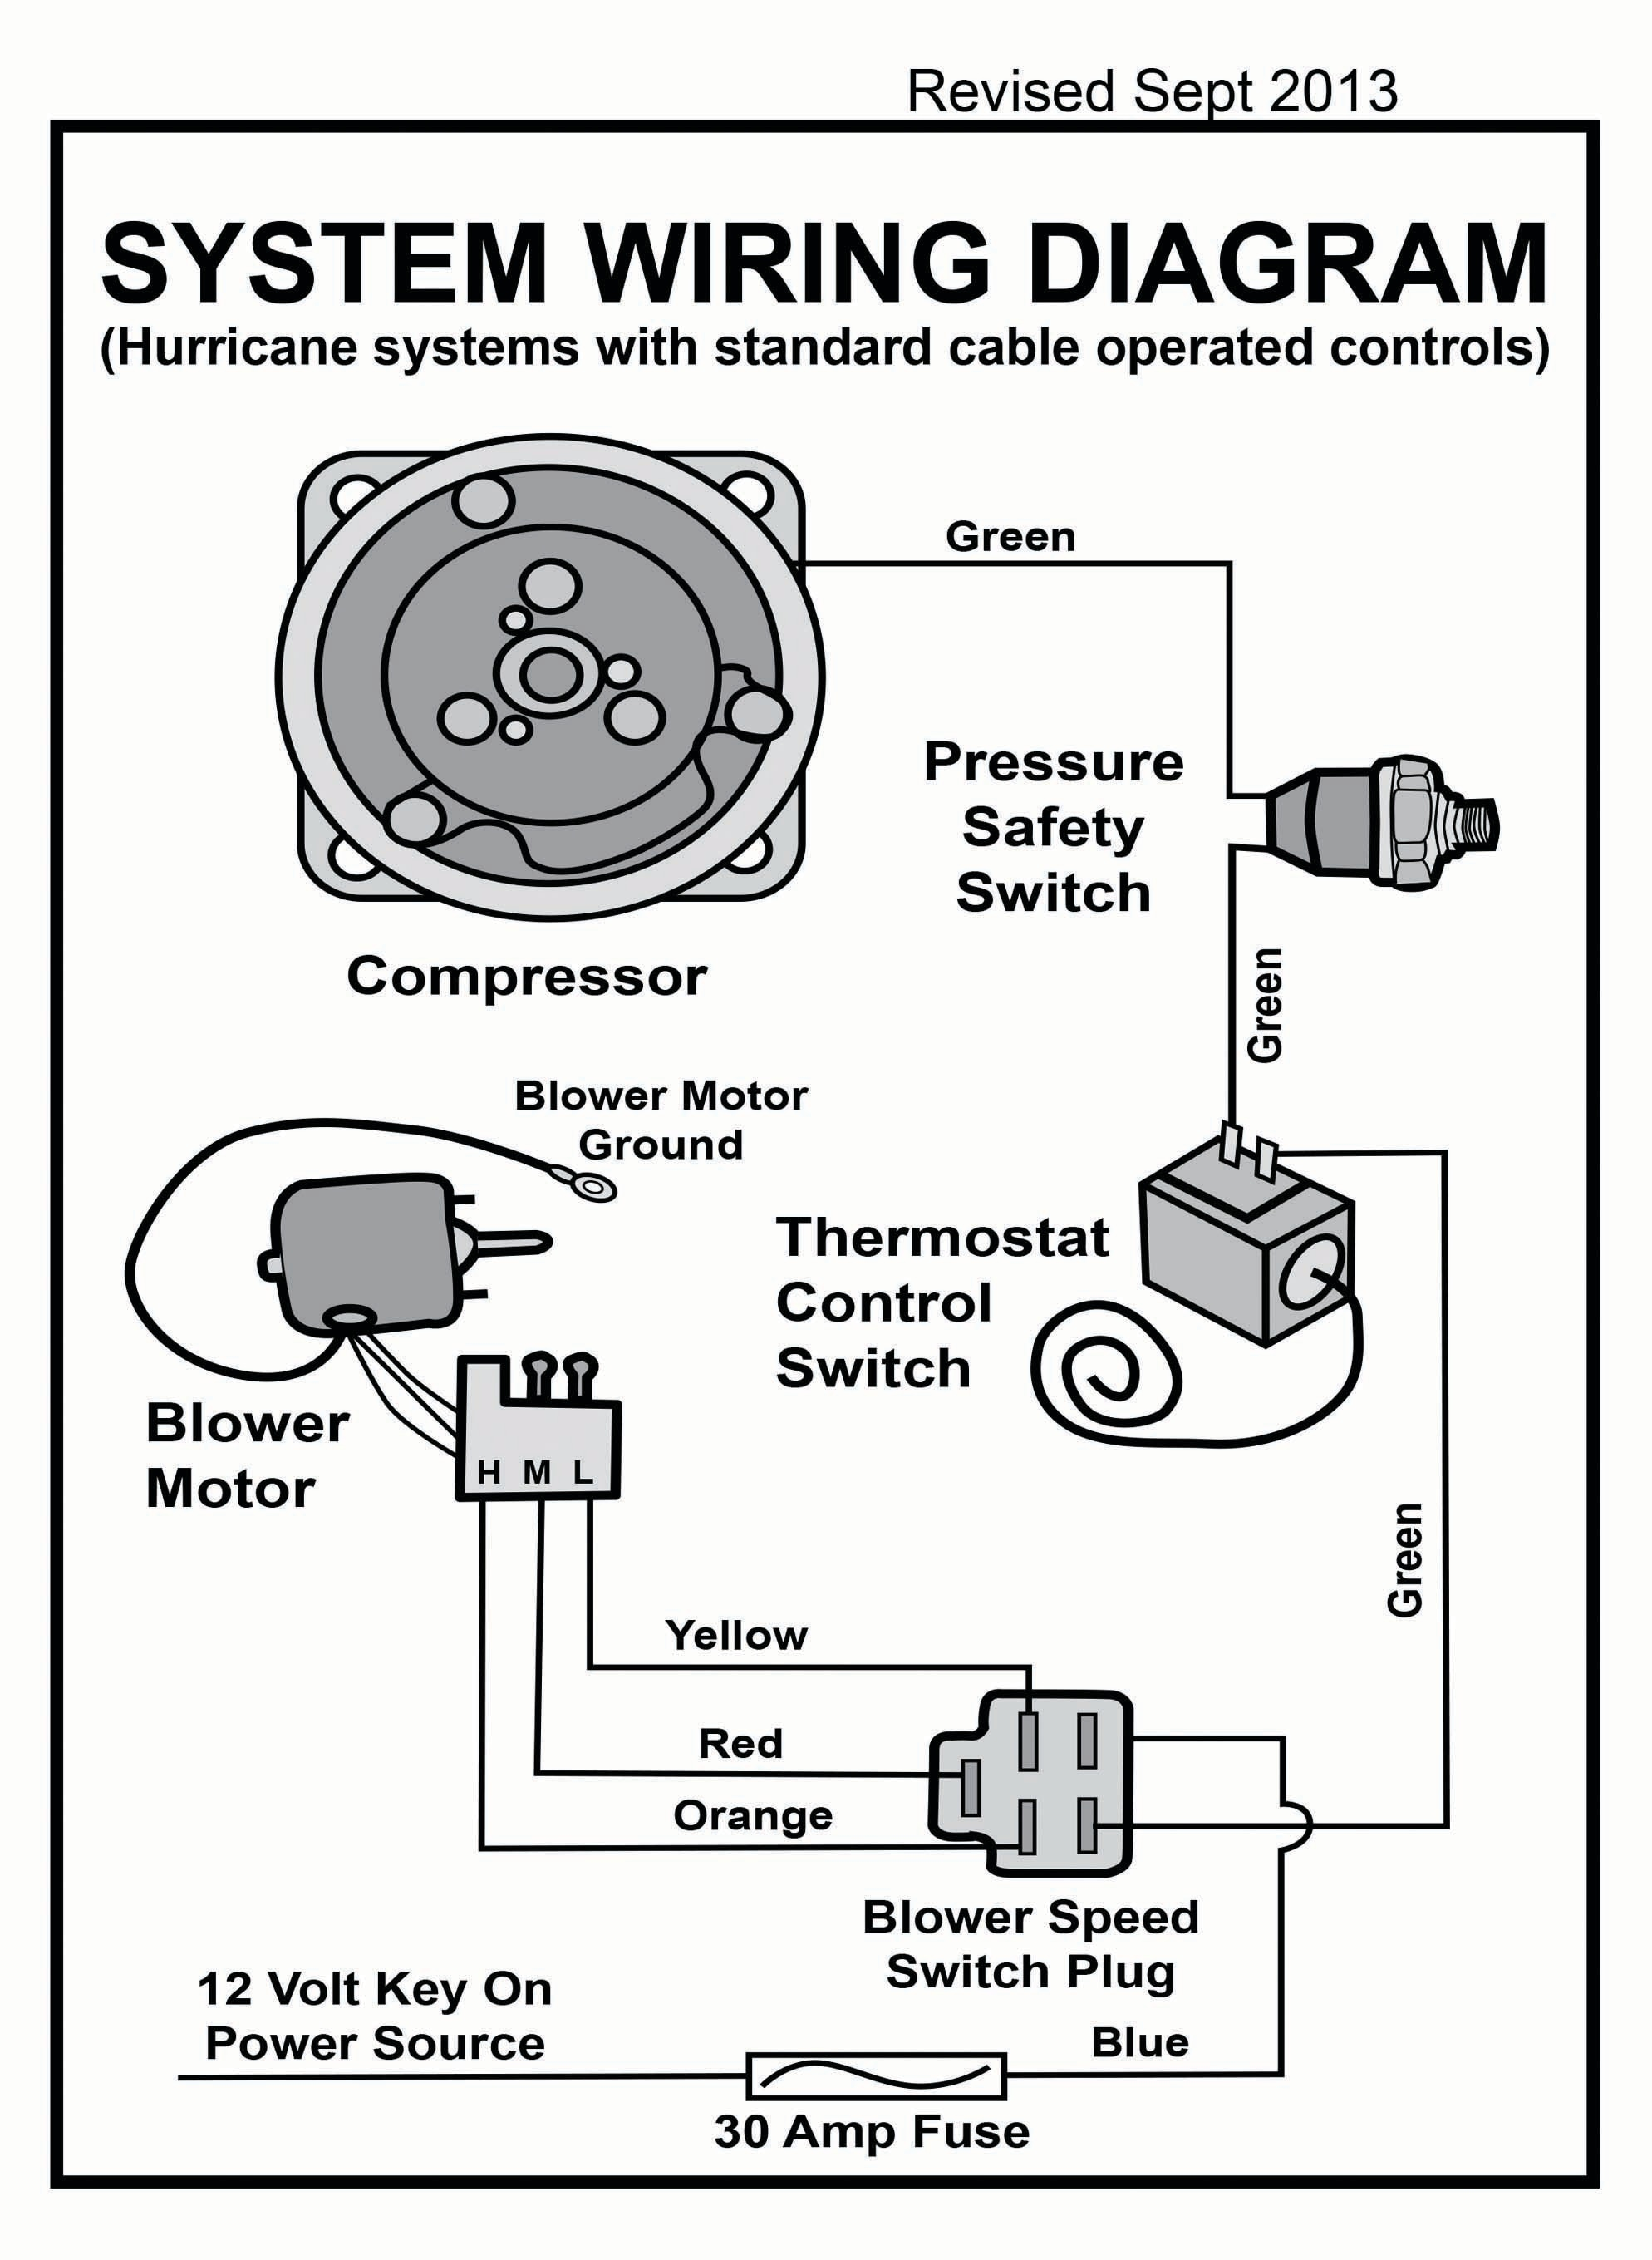 old air products hurricane wiring diagram